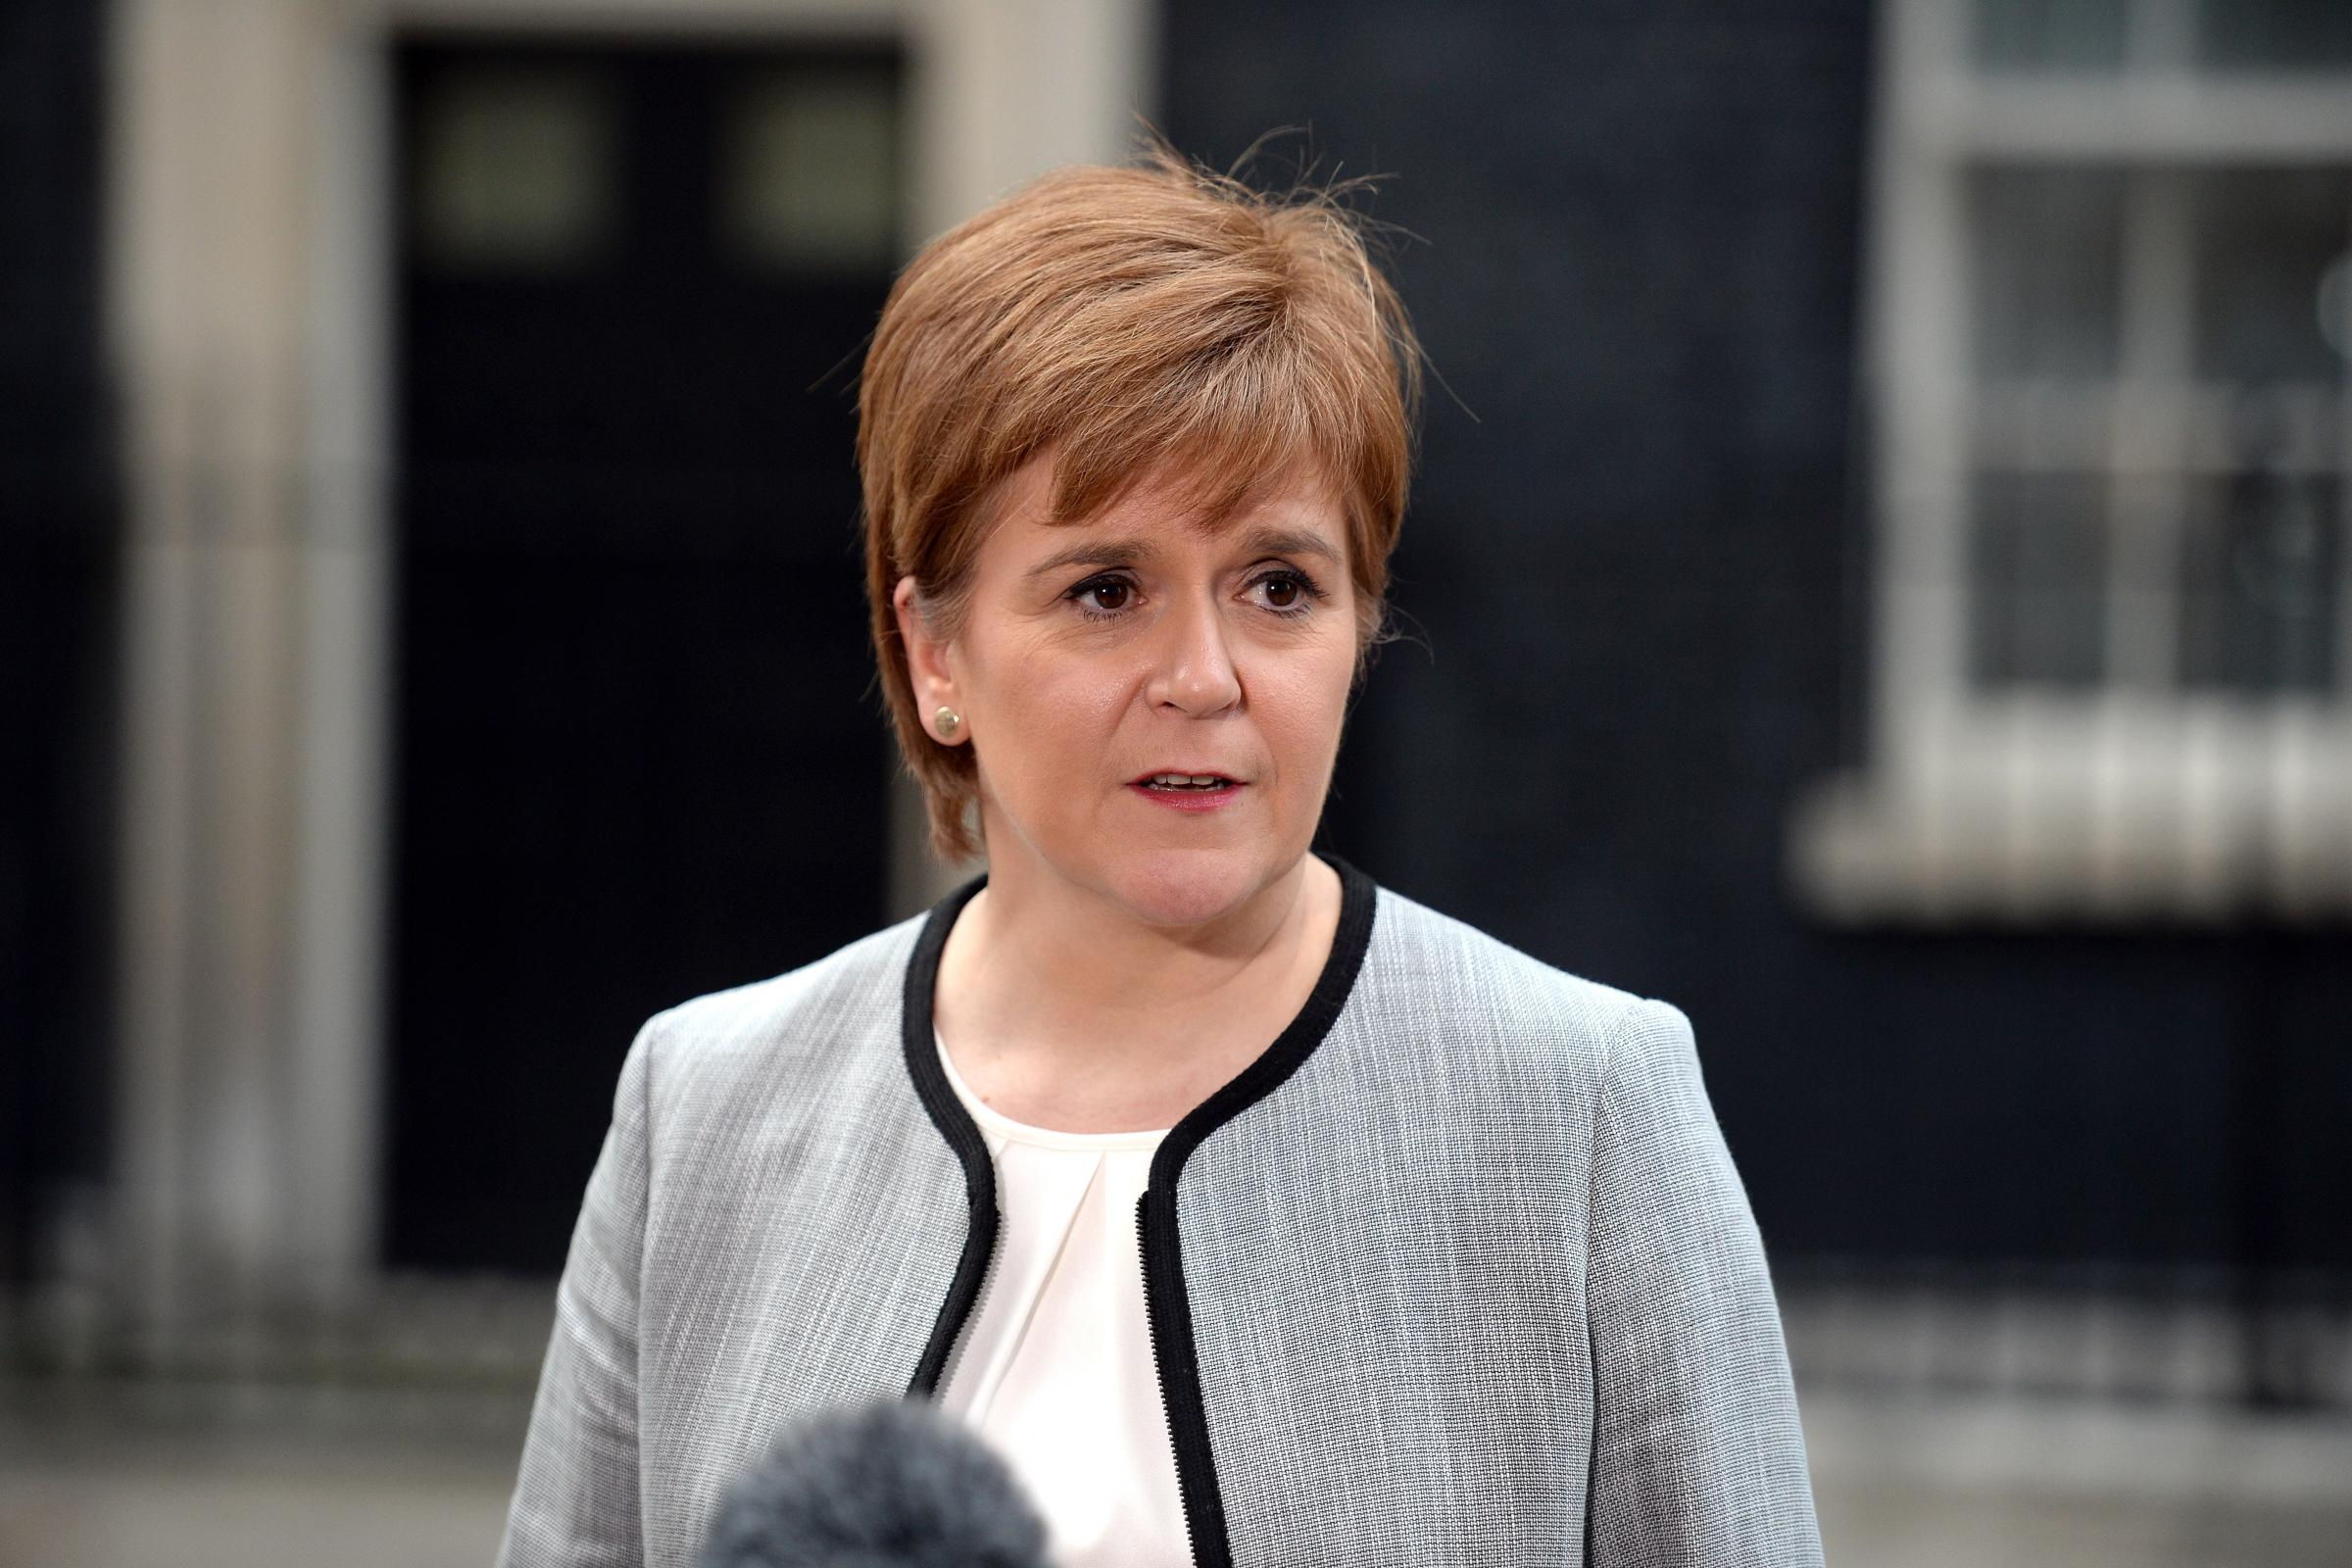 Nicola Sturgeon told she was 'not bright enough' to understand Brexit deal